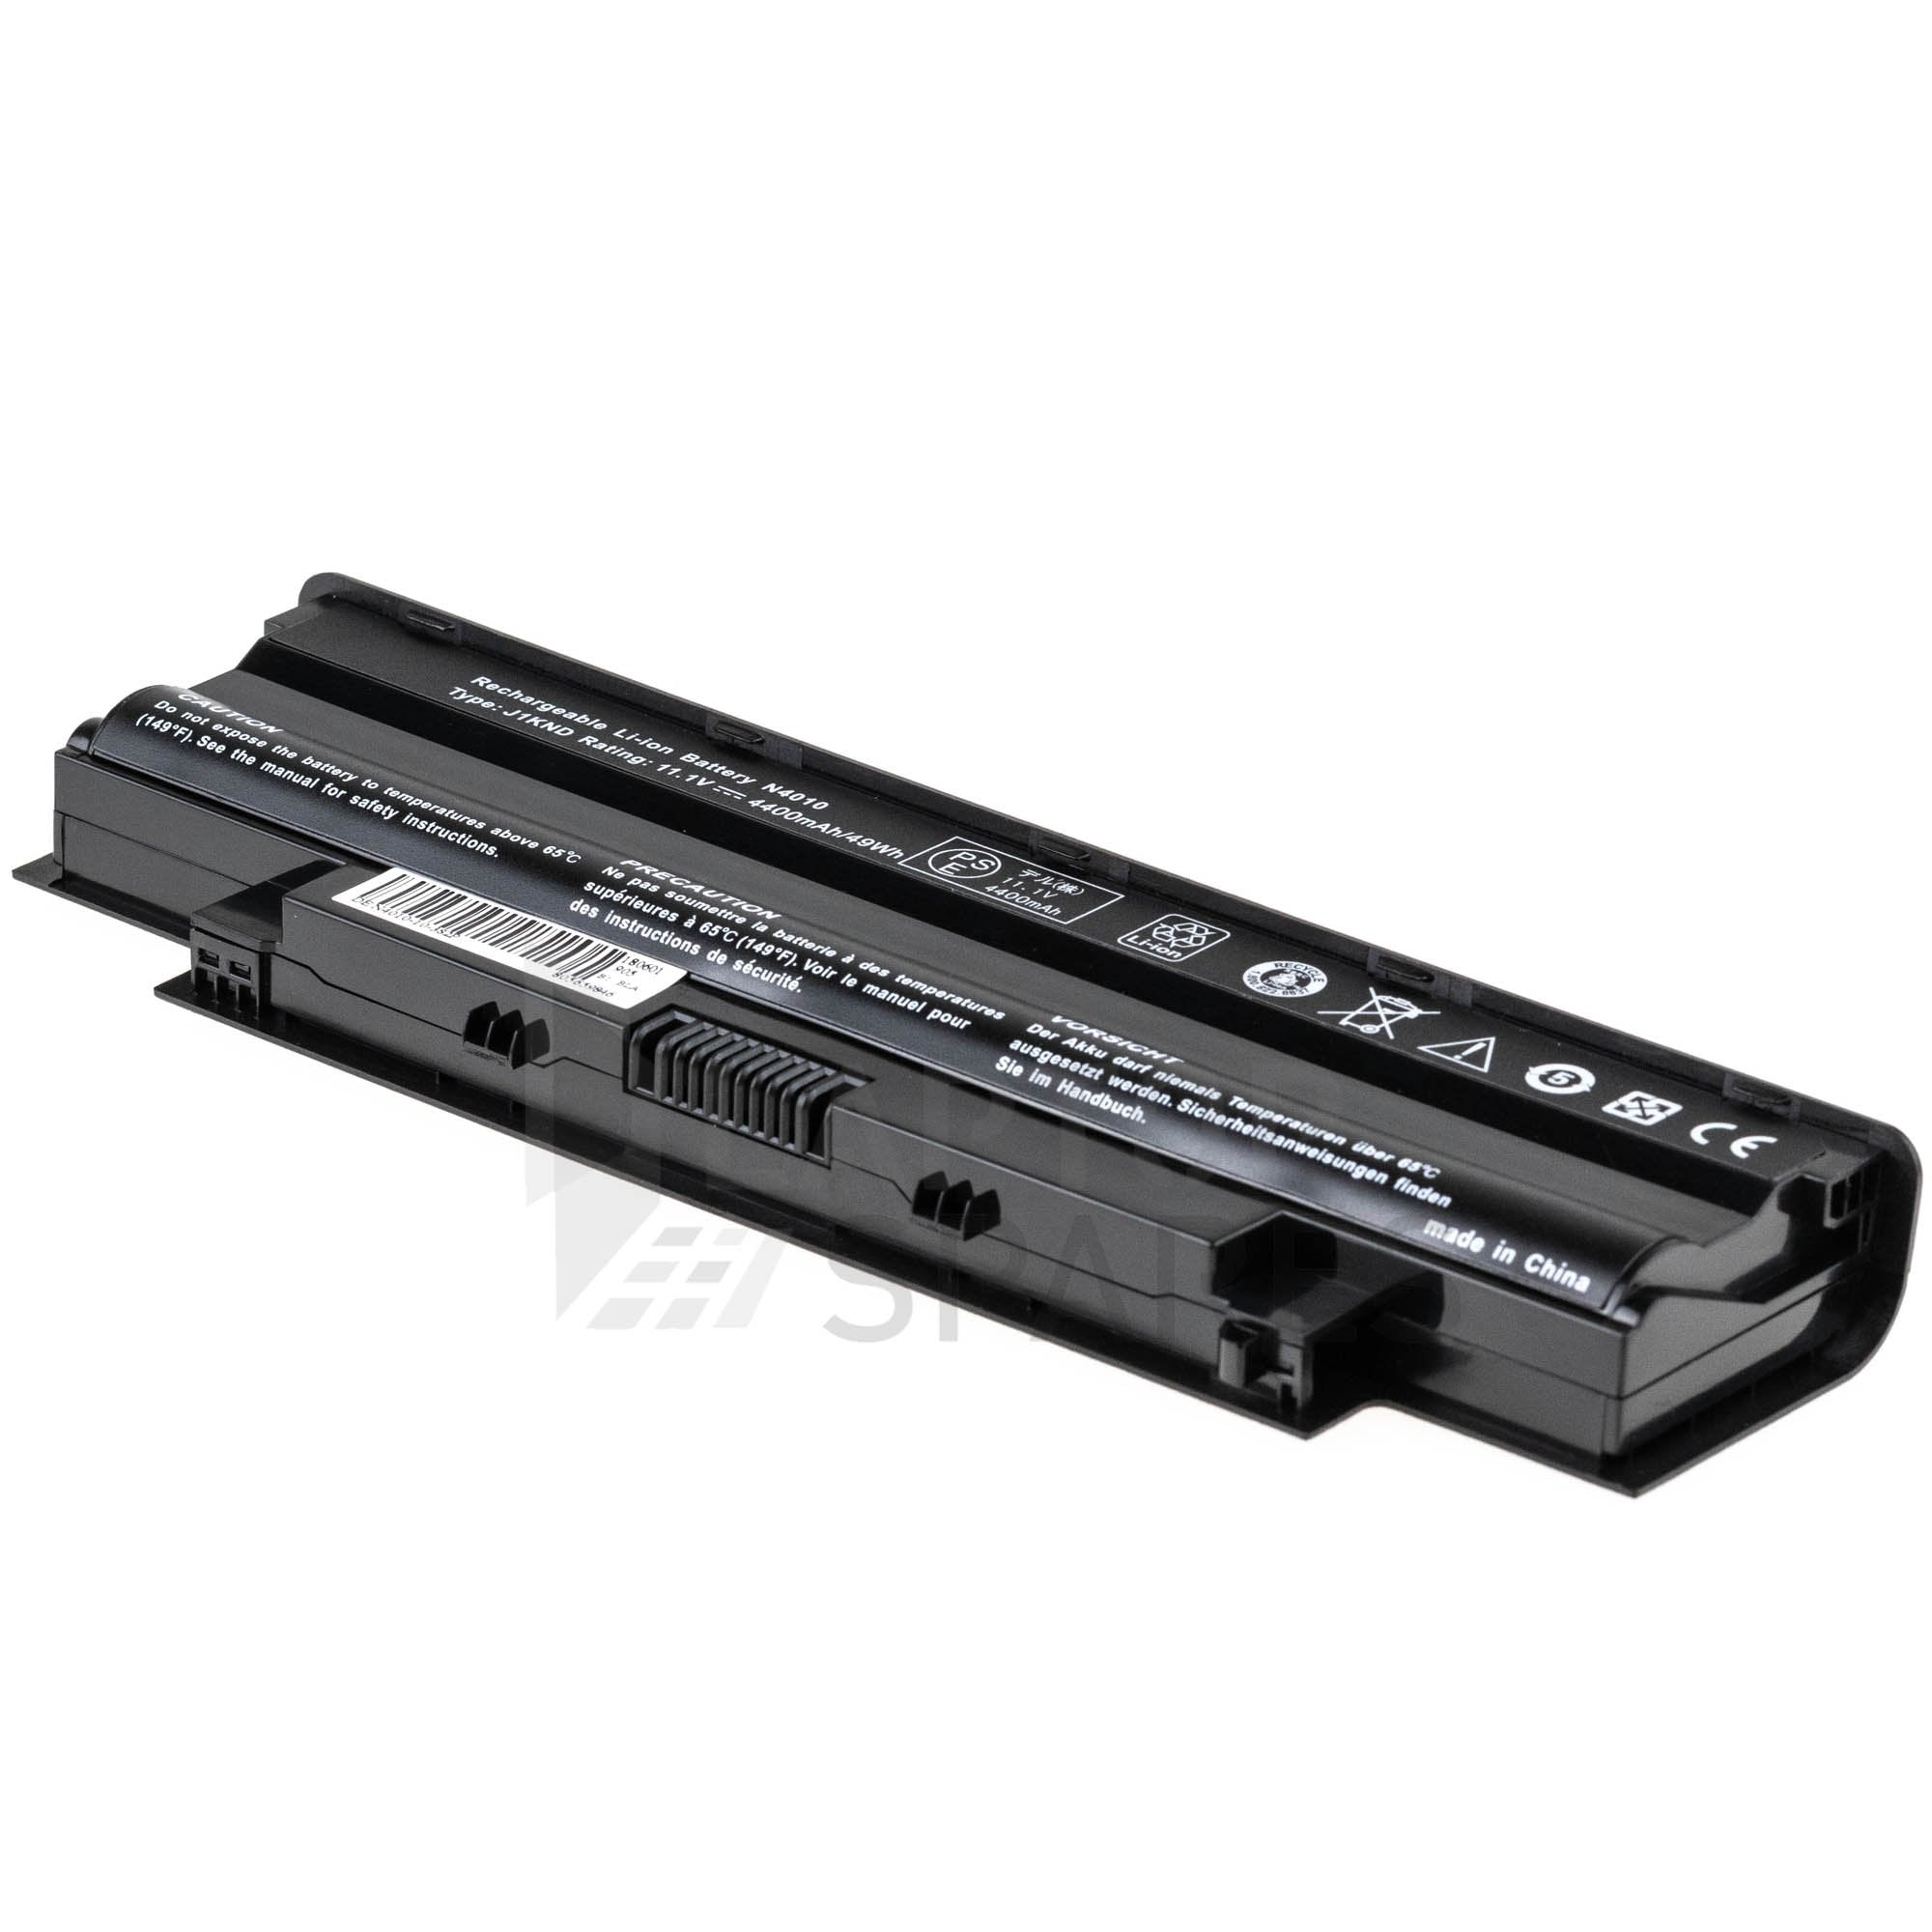 Dell Inspiron 14R 4010-D382 4400mAh 6 Cell Battery